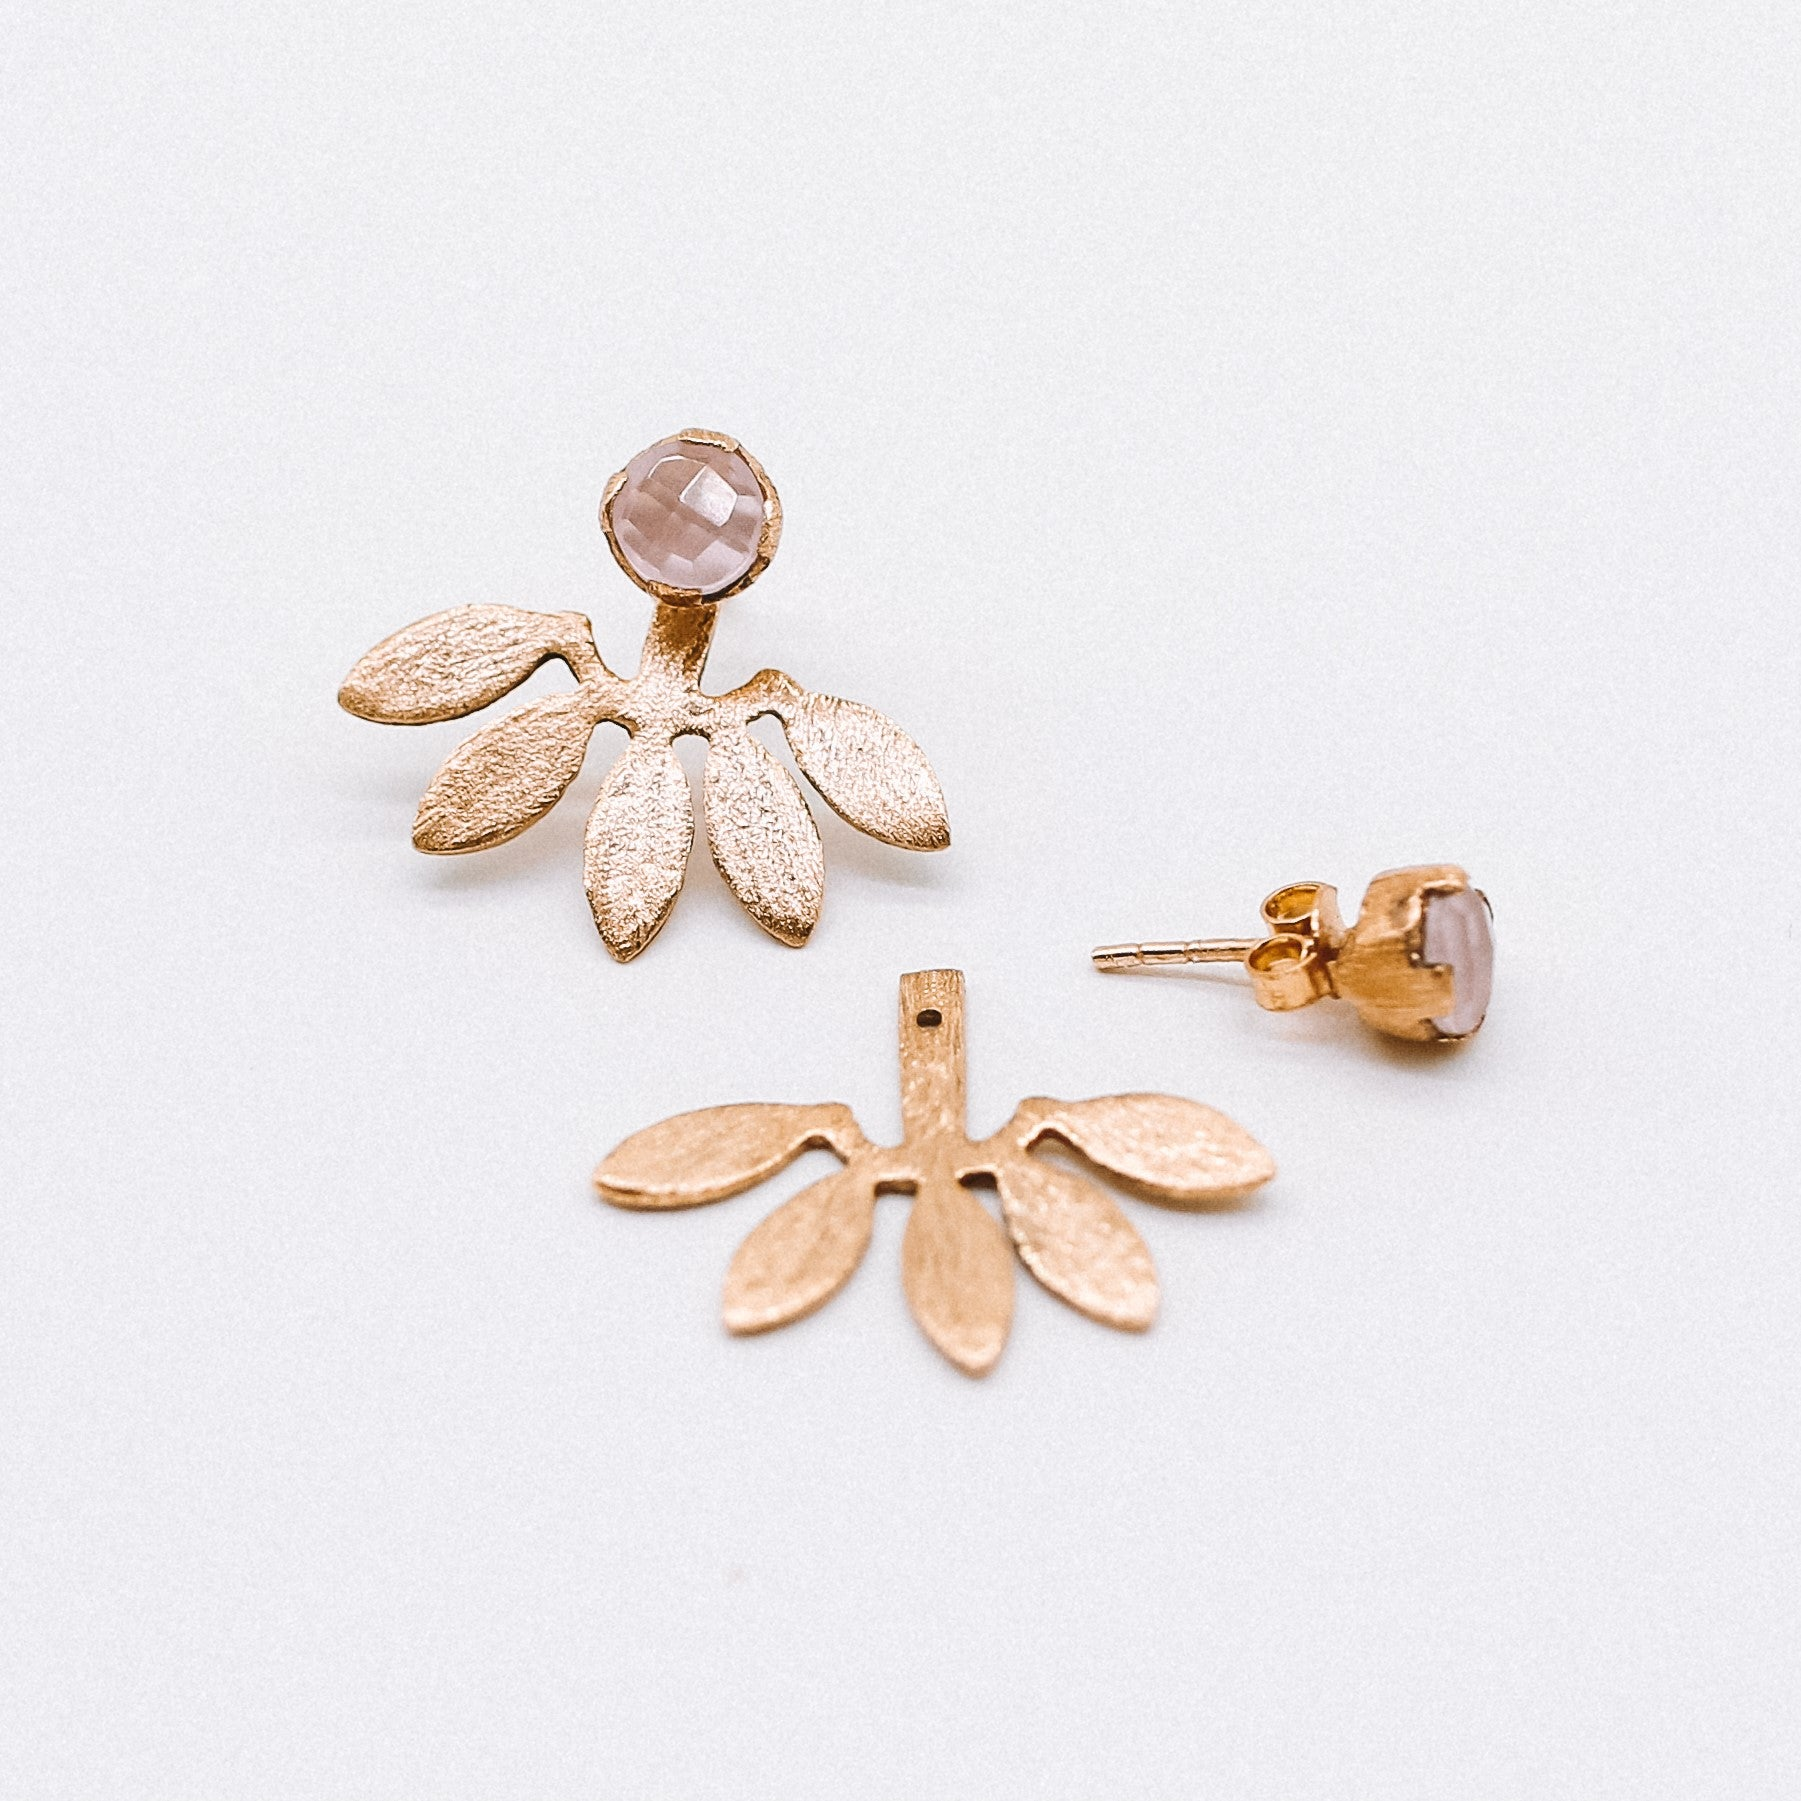 Daisy Studs-Handmade gold plated Katy Valentine - Shop with Sparkle & The Sinner